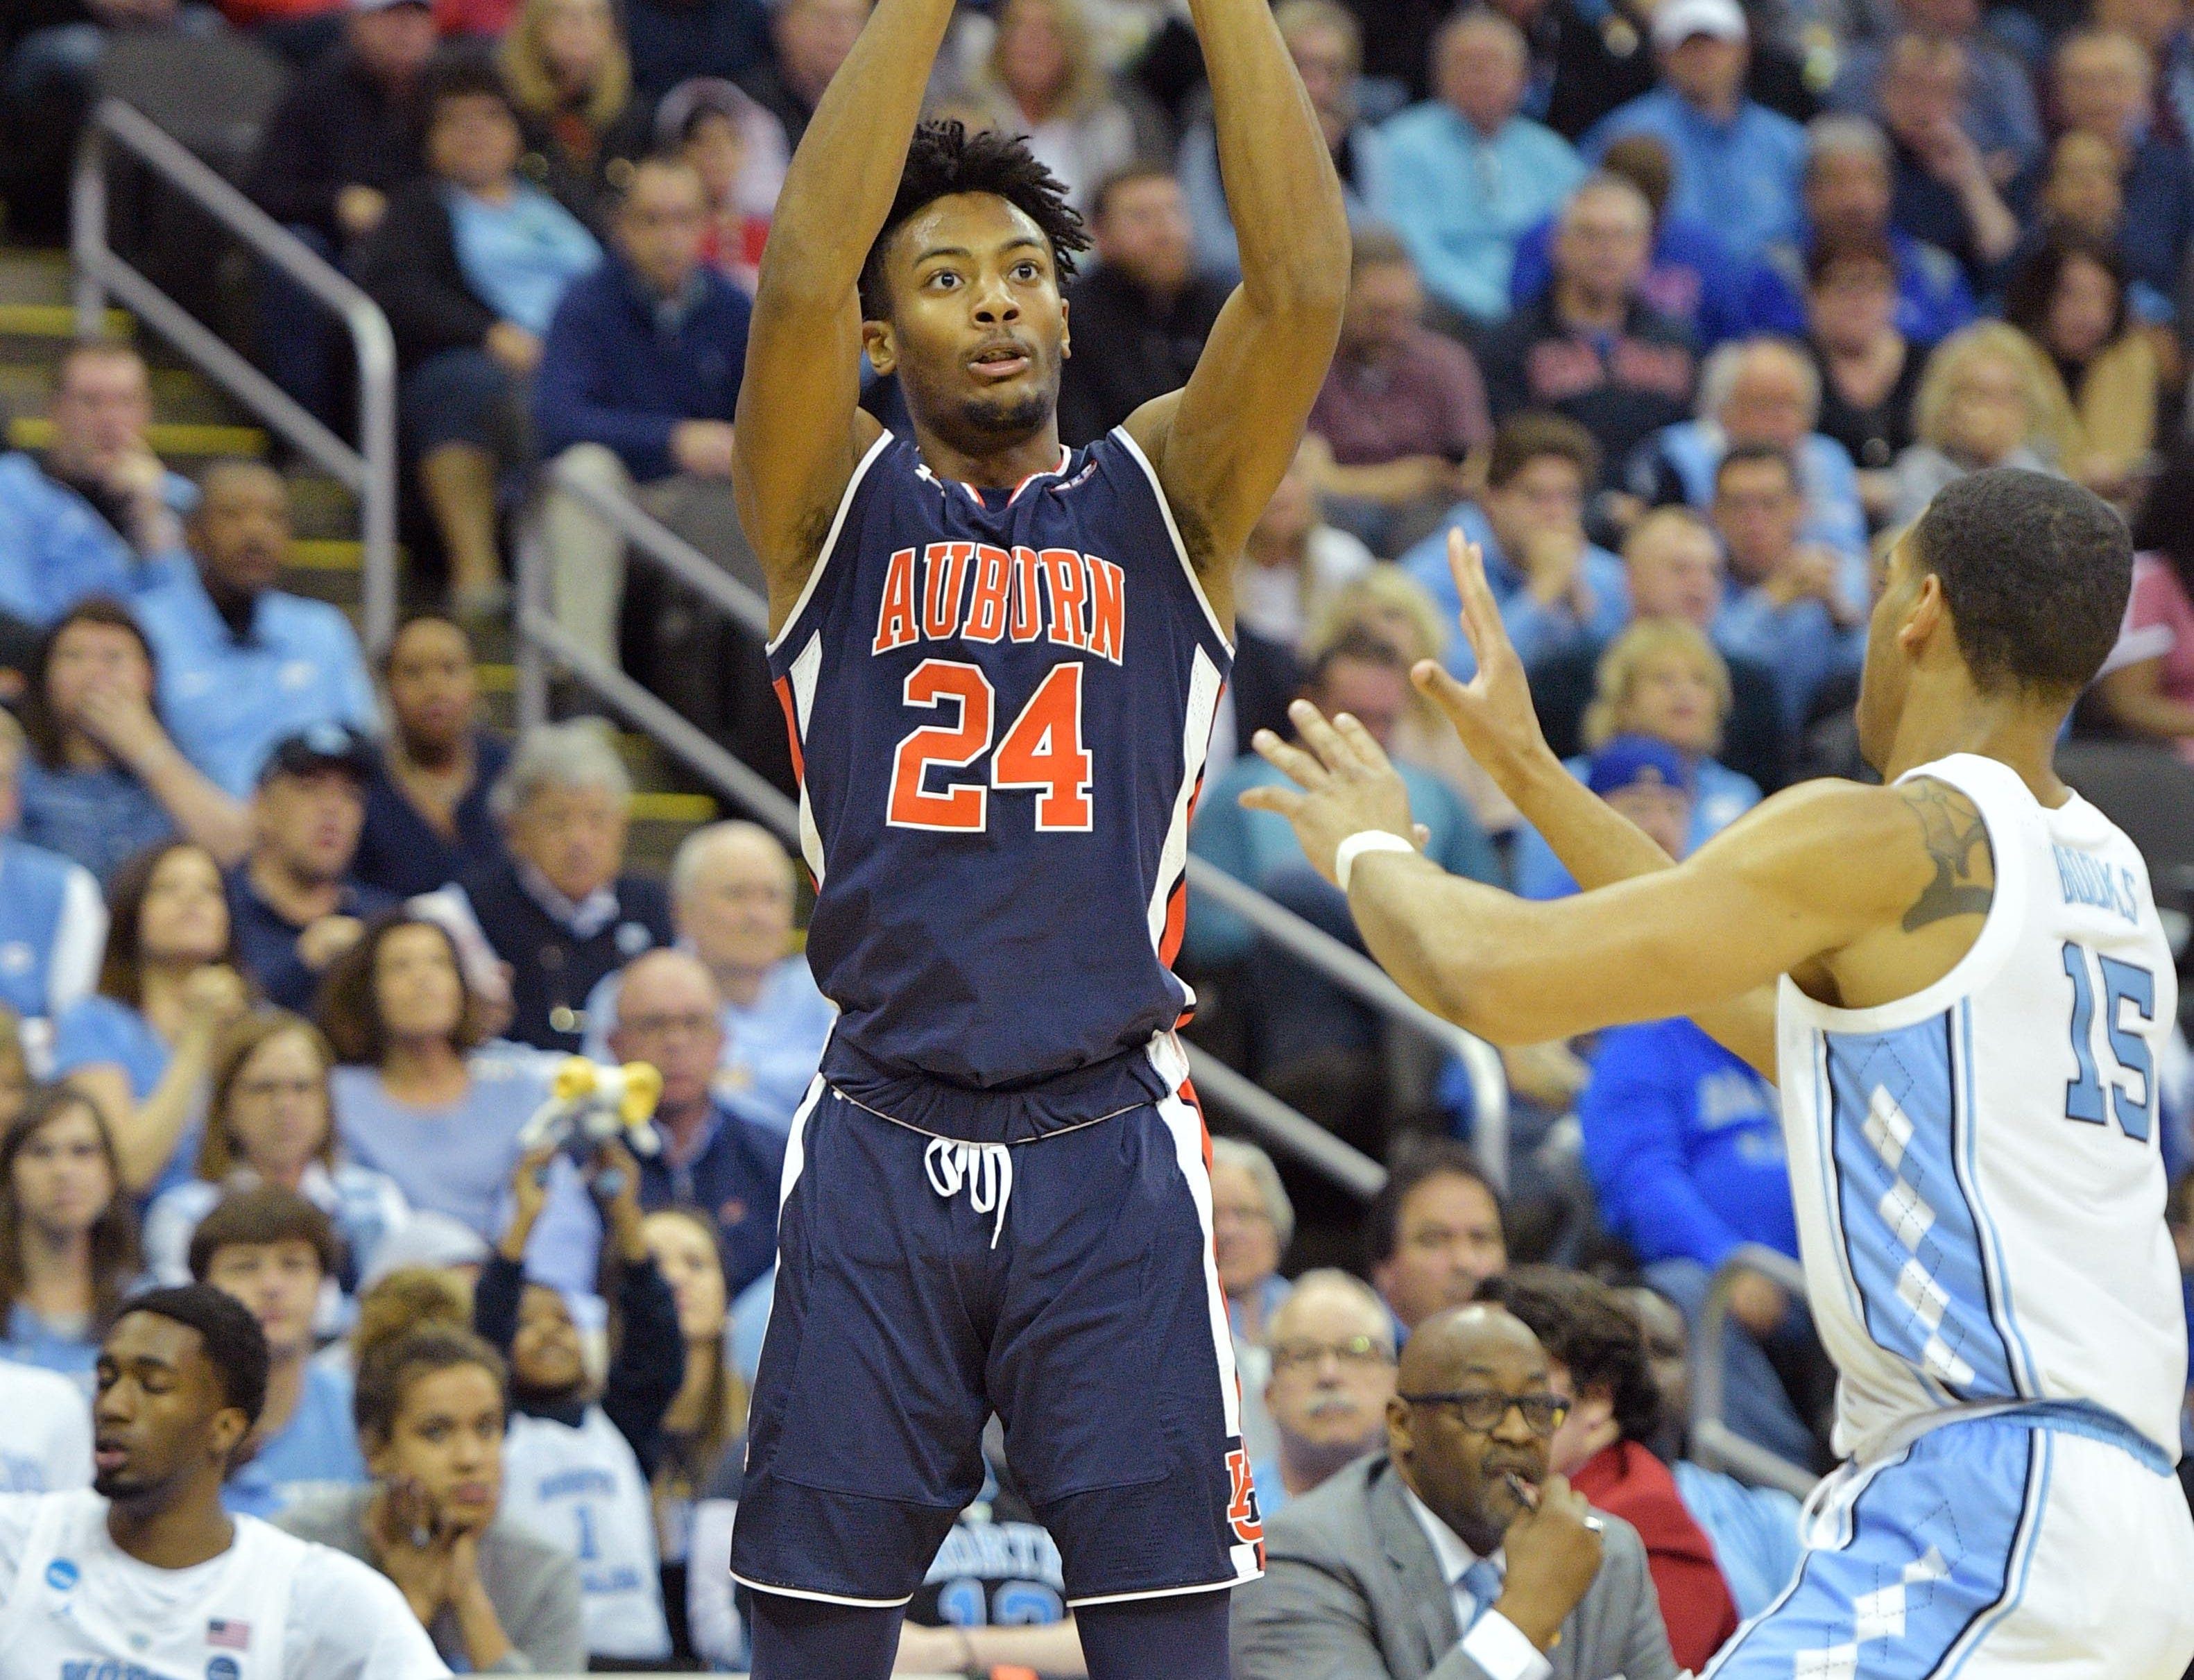 Mar 29, 2019; Kansas City, MO, United States; Auburn Tigers forward Anfernee McLemore (24) shoots over North Carolina Tar Heels forward Garrison Brooks (15) during the first half in the semifinals of the midwest regional of the 2019 NCAA Tournament at Sprint Center. Mandatory Credit: Denny Medley-USA TODAY Sports